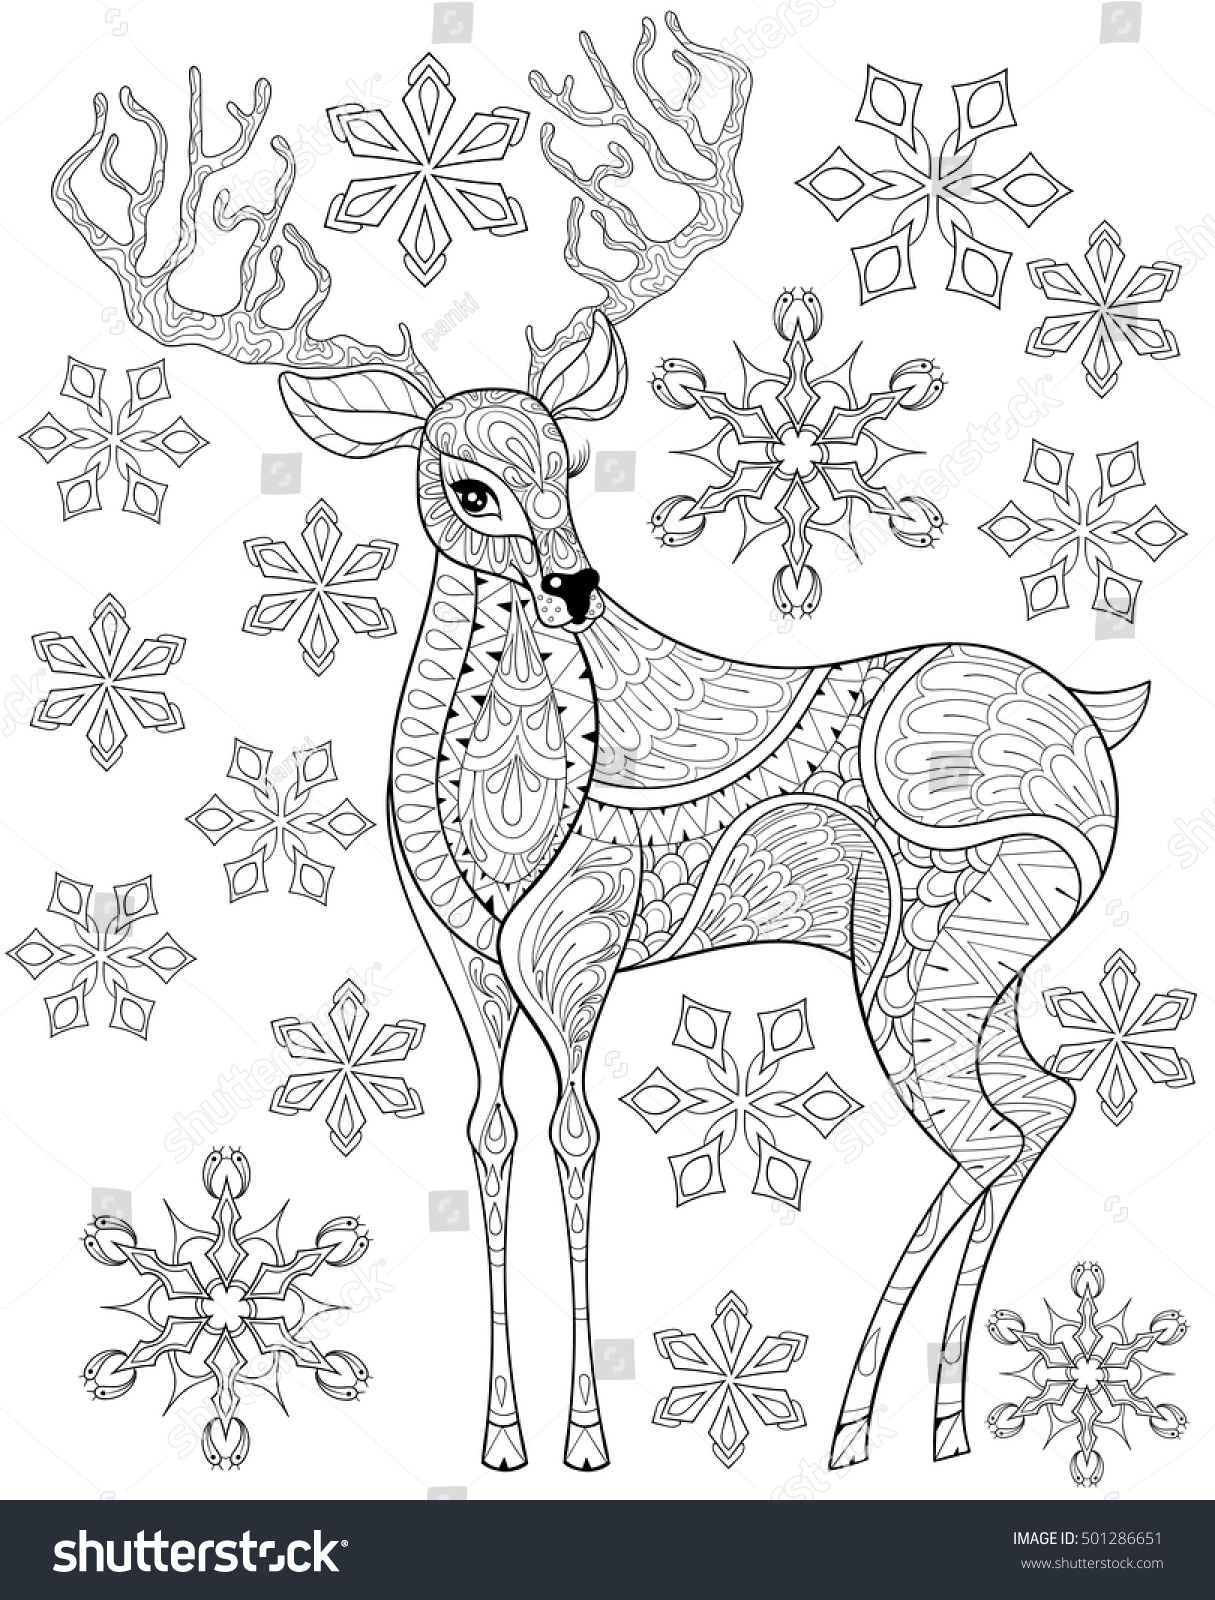 Christmas Reindeer Coloring Pages Free Coloring Pages Download ...